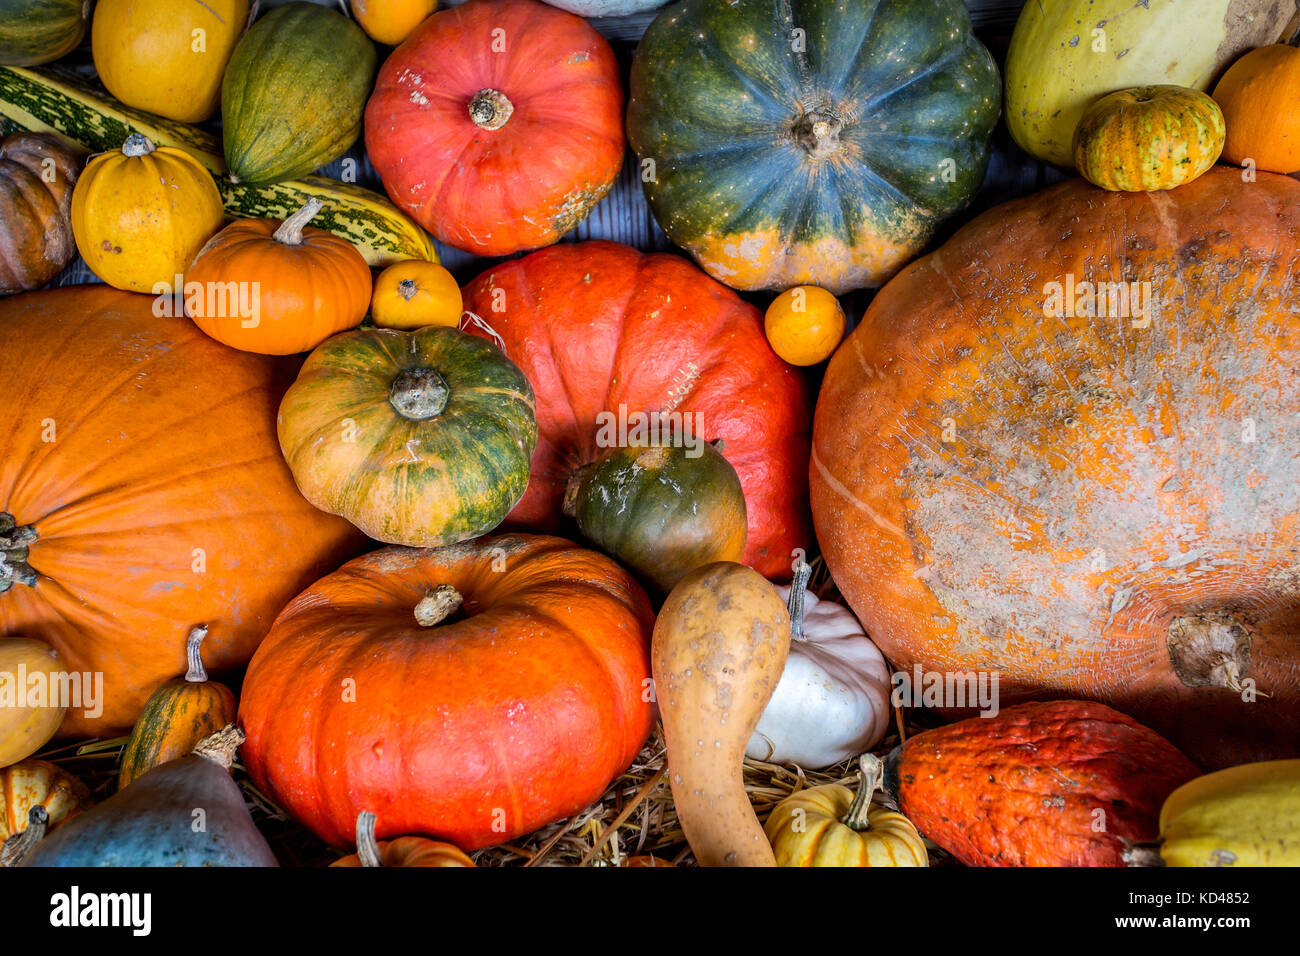 Assorted colourful pumpkins, squashes and gourds - Stock Image